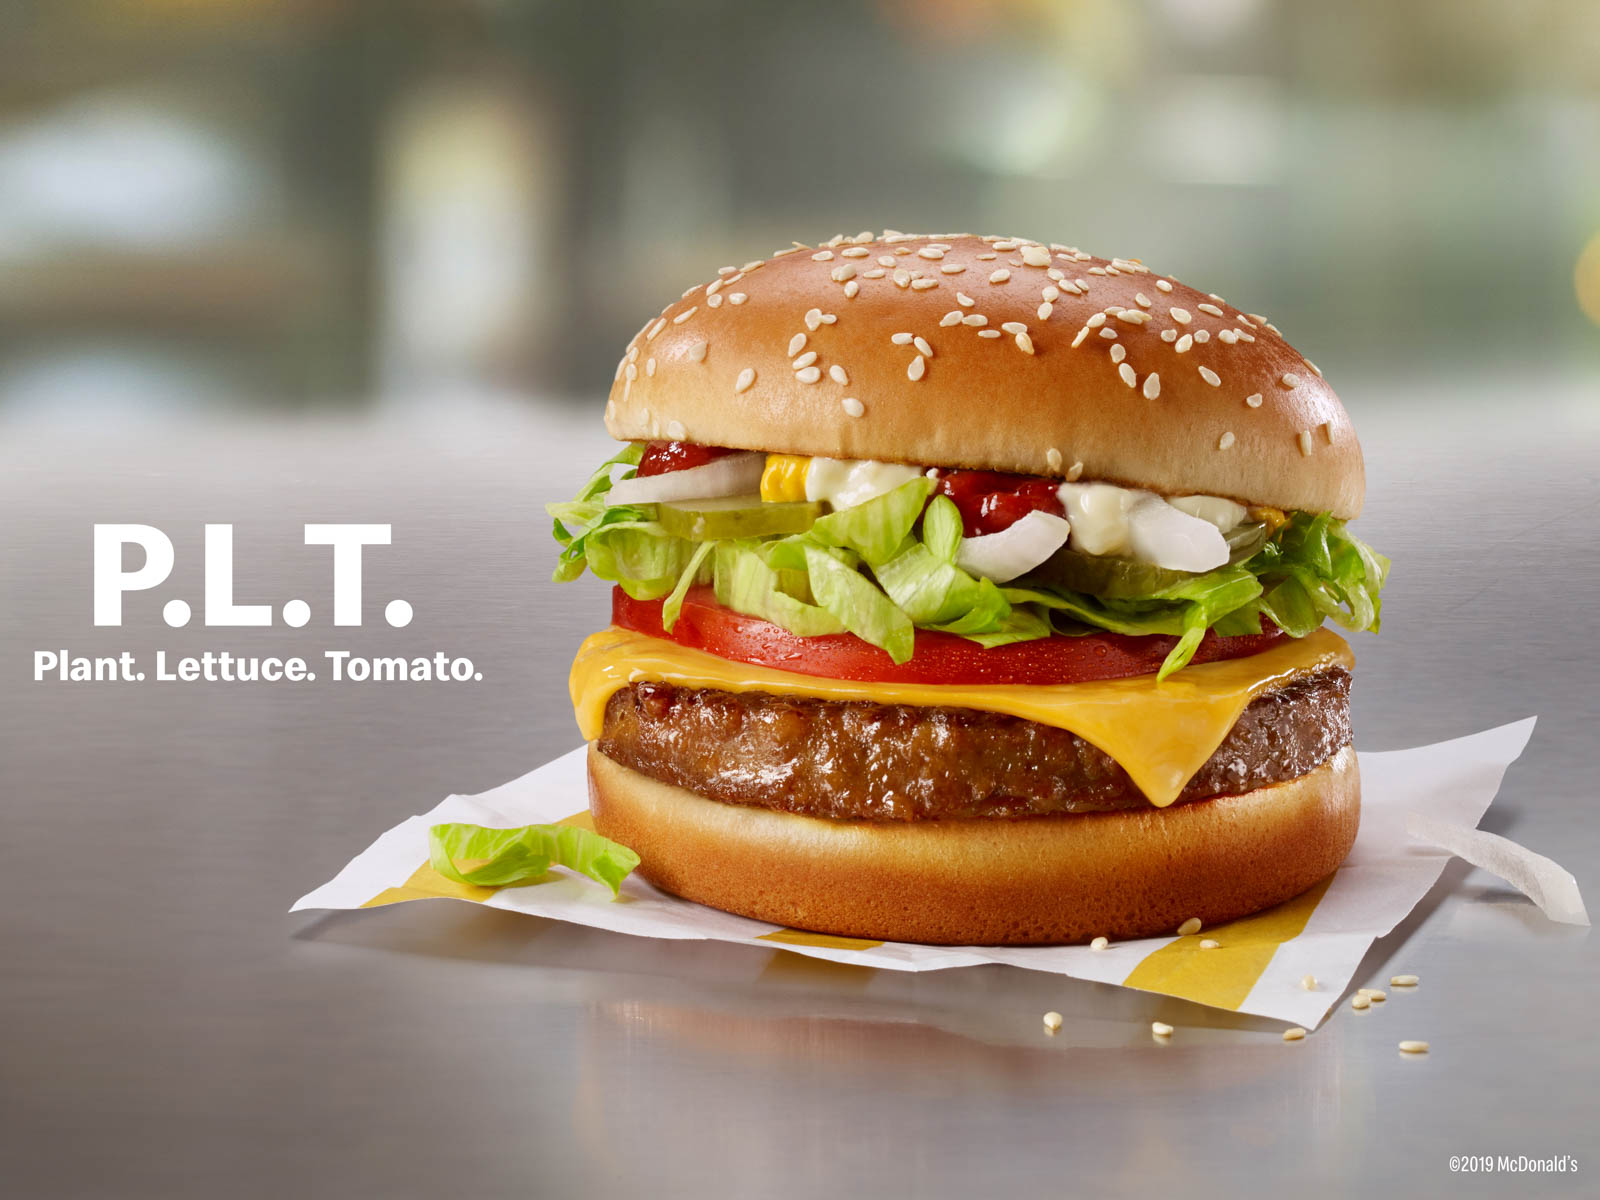 McDonald's Plant Based Burger